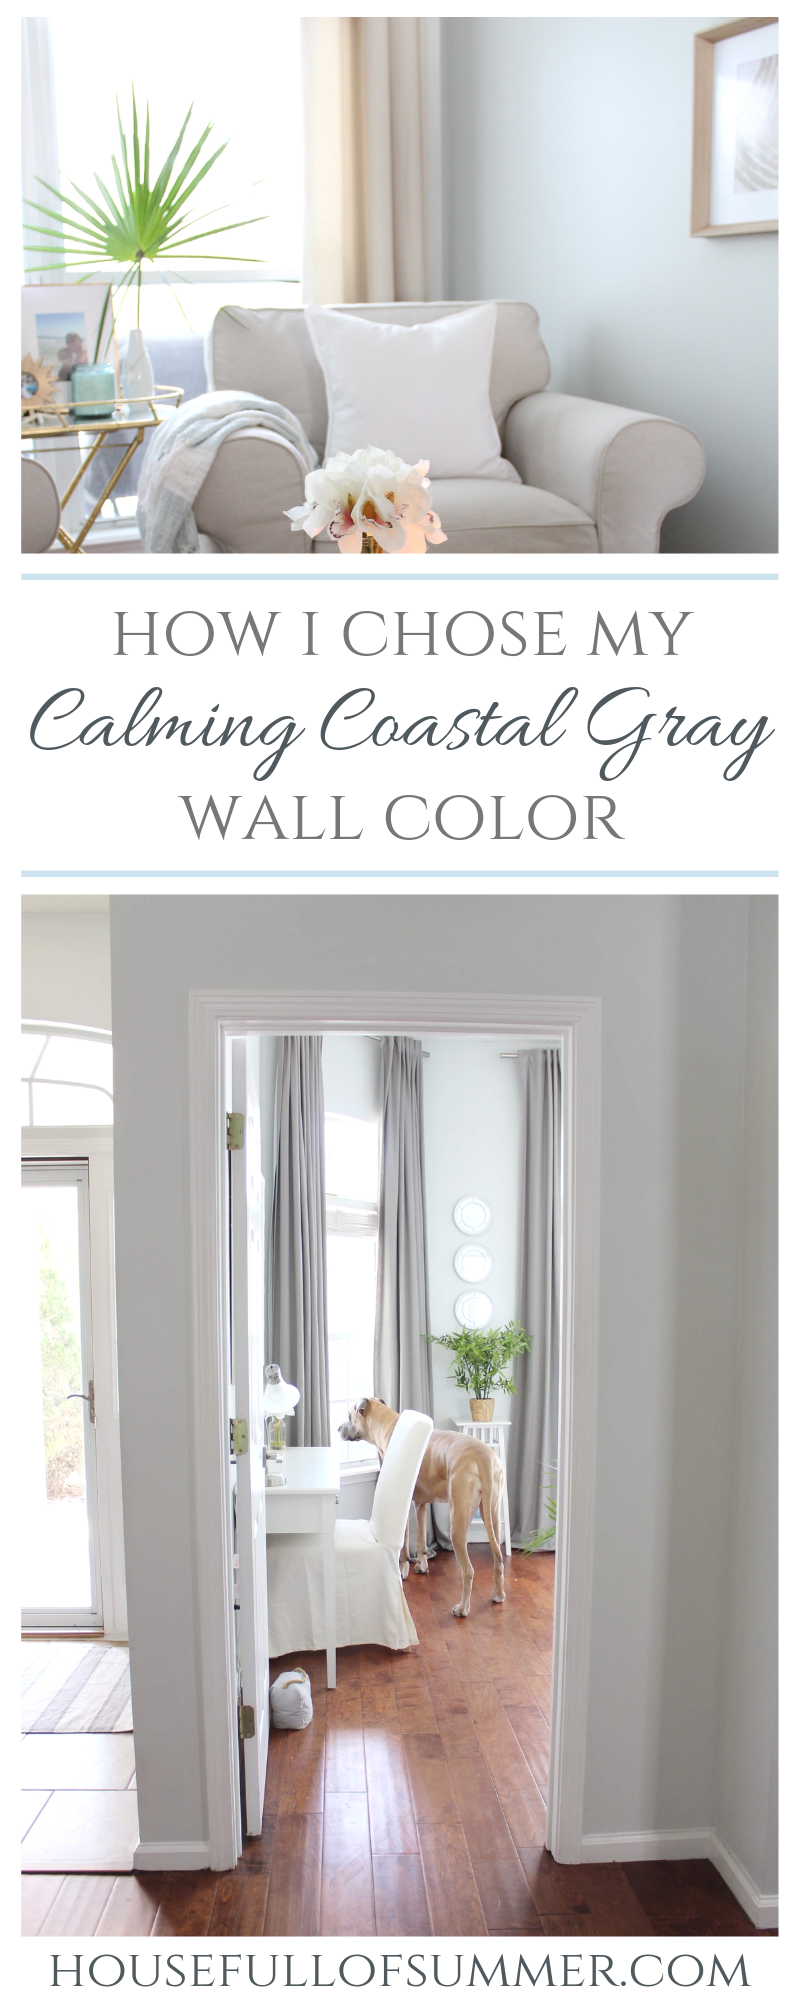 Calming Coastal Gray Wall Color